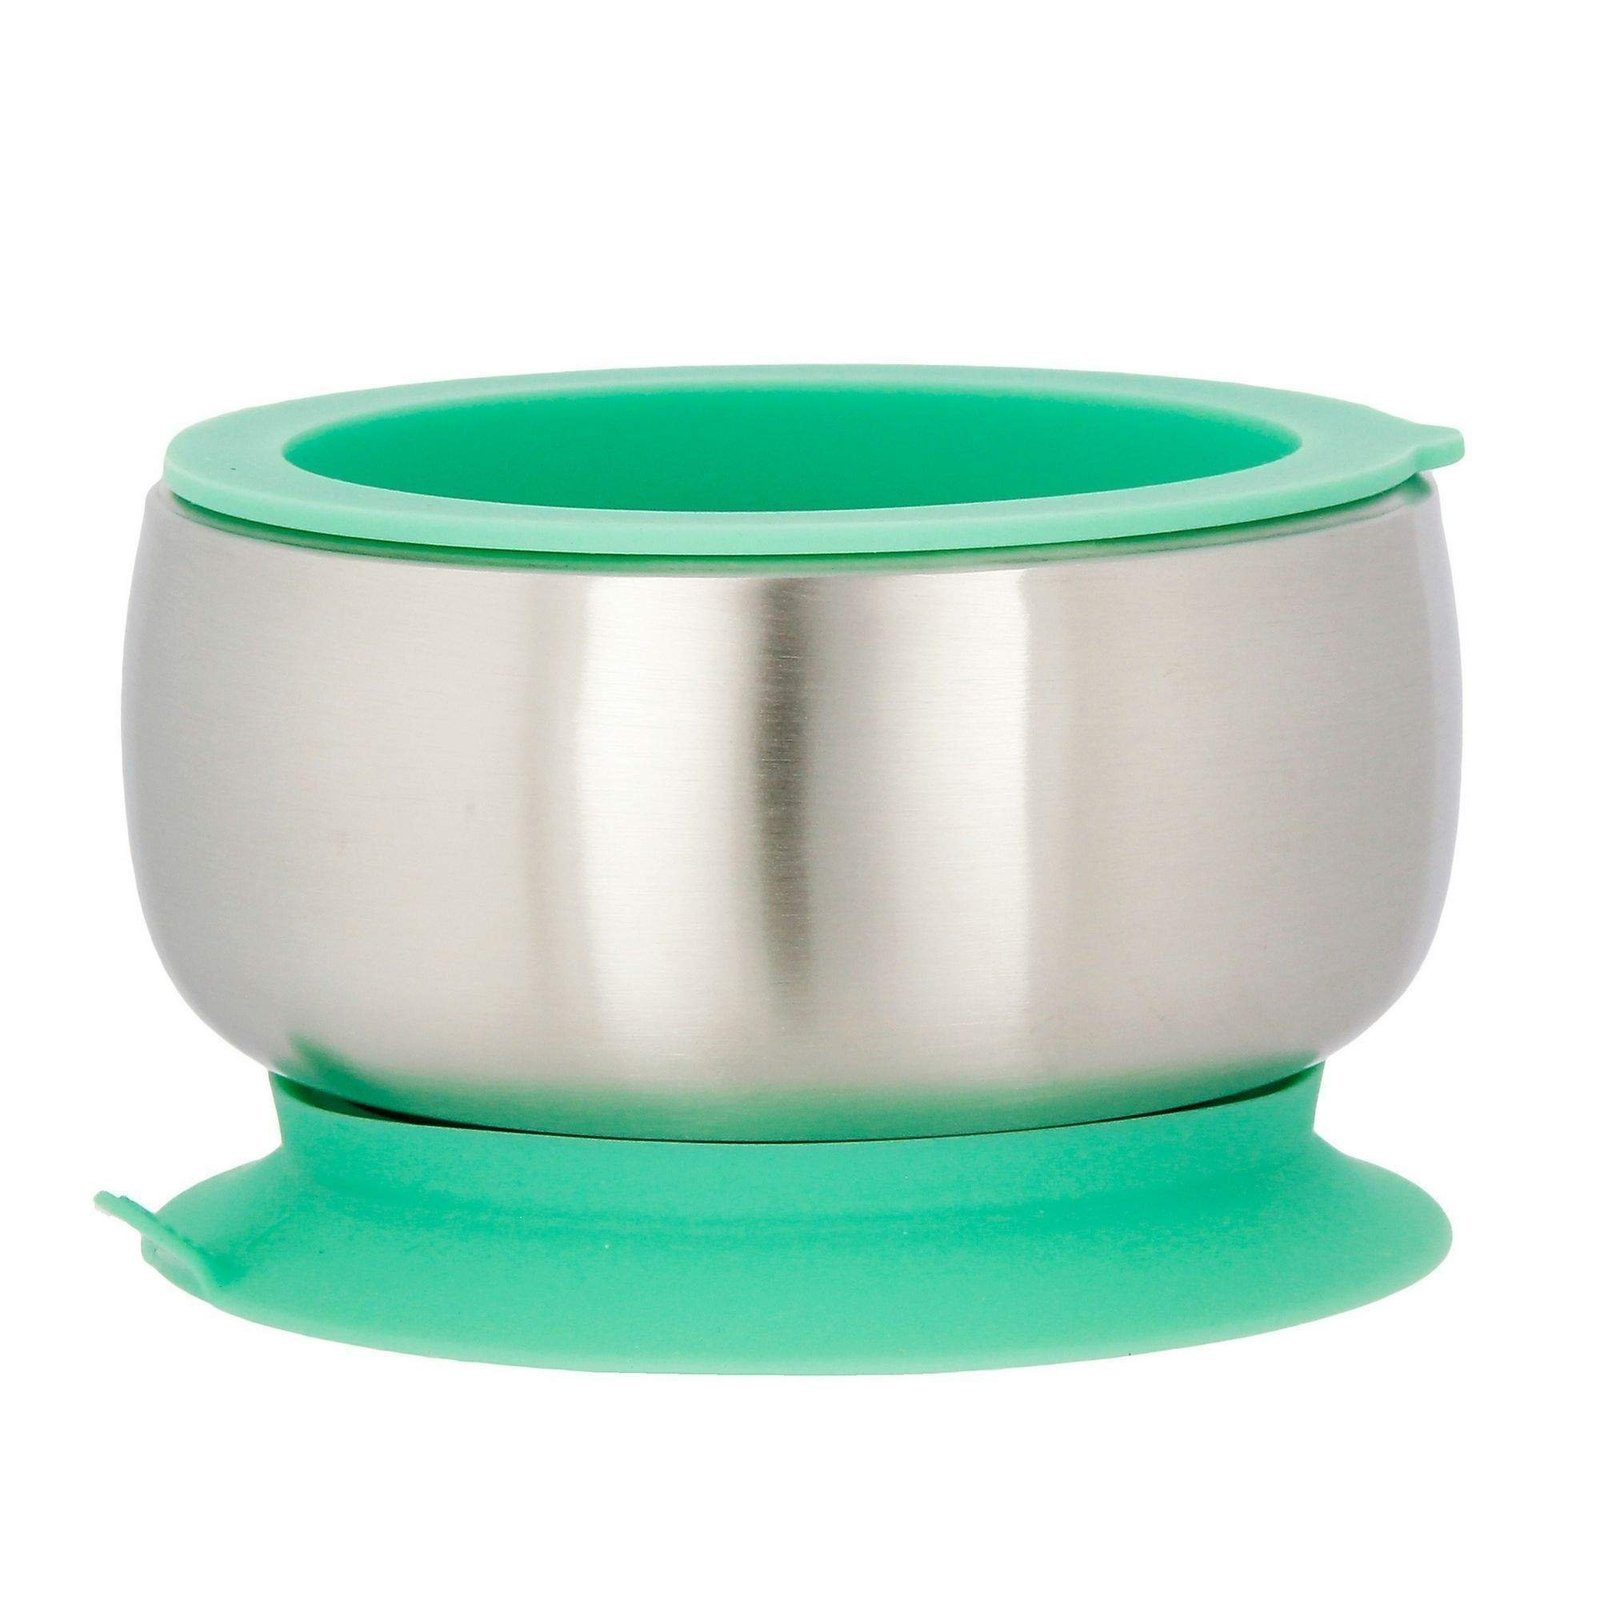 Avanchy Baby Feeding Stainless Steel Spill Proof Stay Put Suction Bowl + Air Tight Lid - Great Baby Gift Set (Green)